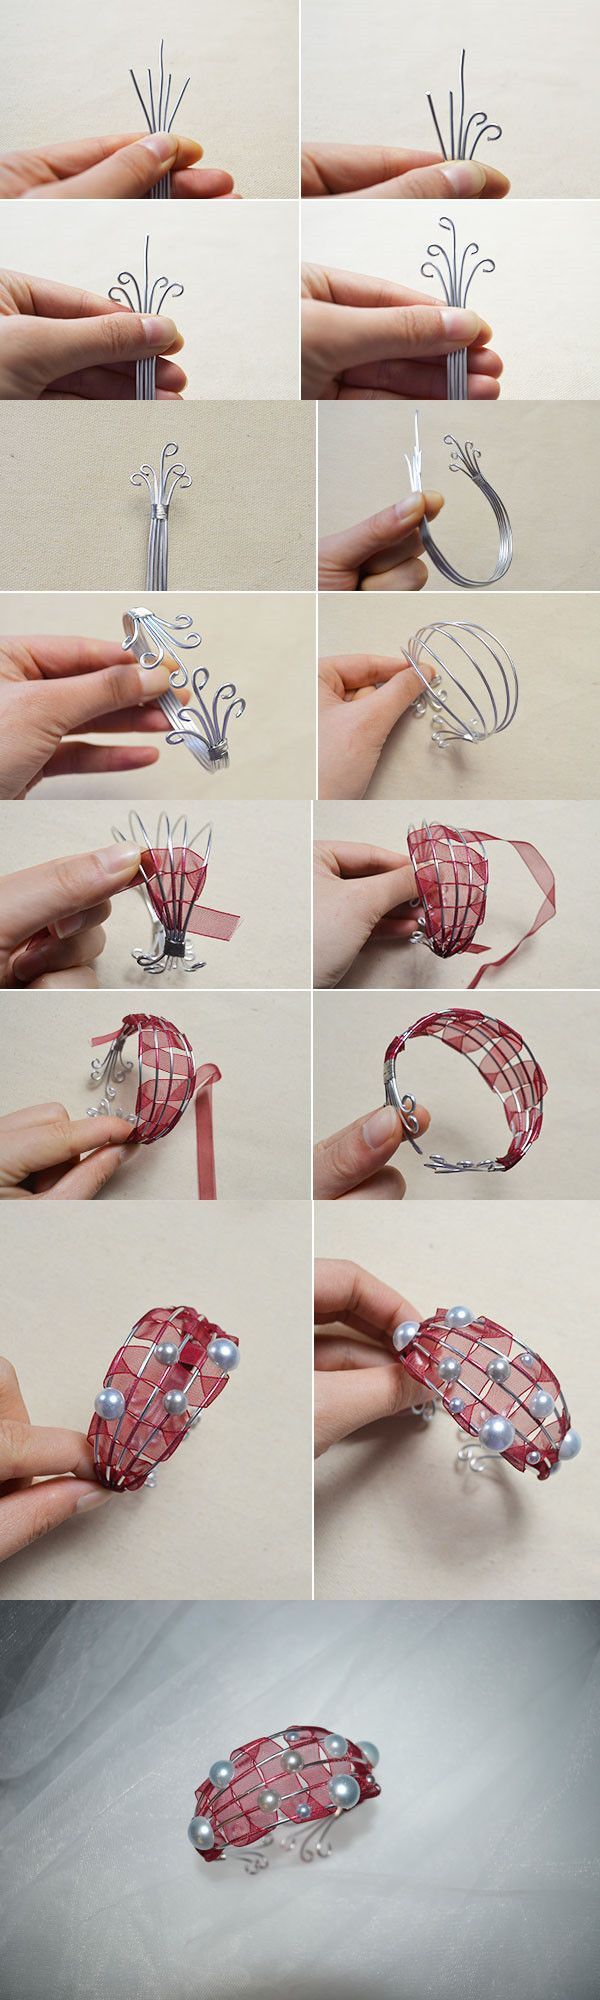 Tutorial on How to Make Red Wire Ribbon Wrapped Bracelets with Pearl Beads from LC.Pandahall.com